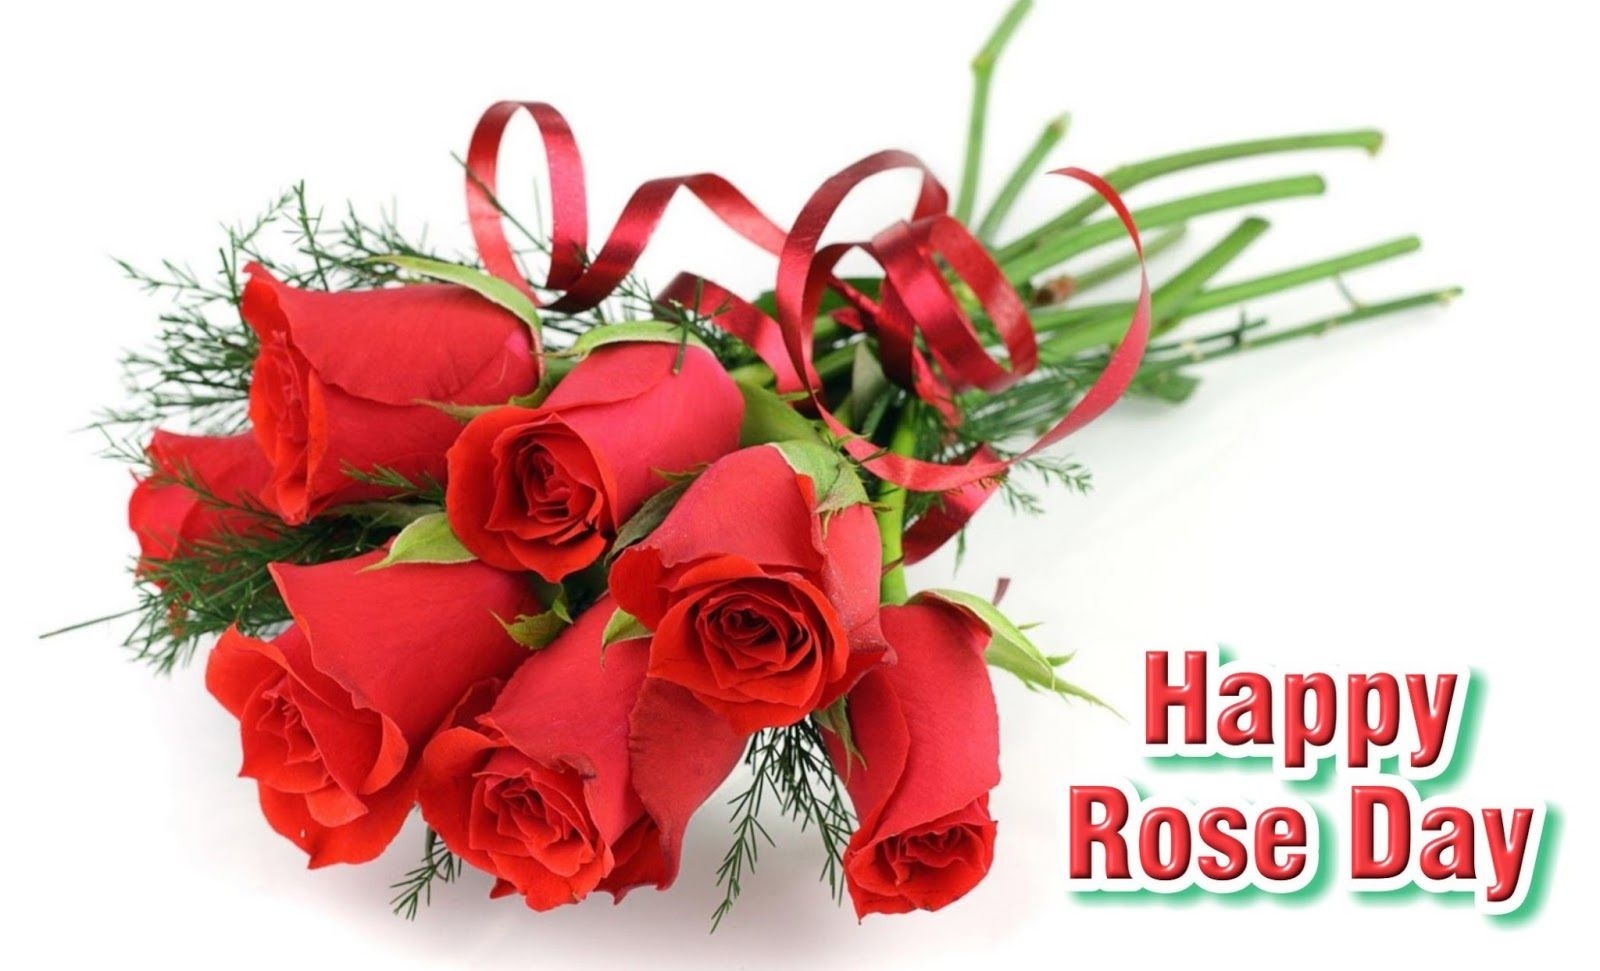 Happy Rose Day 2018 Hd Image For Fiance 50 Happy Rose Day